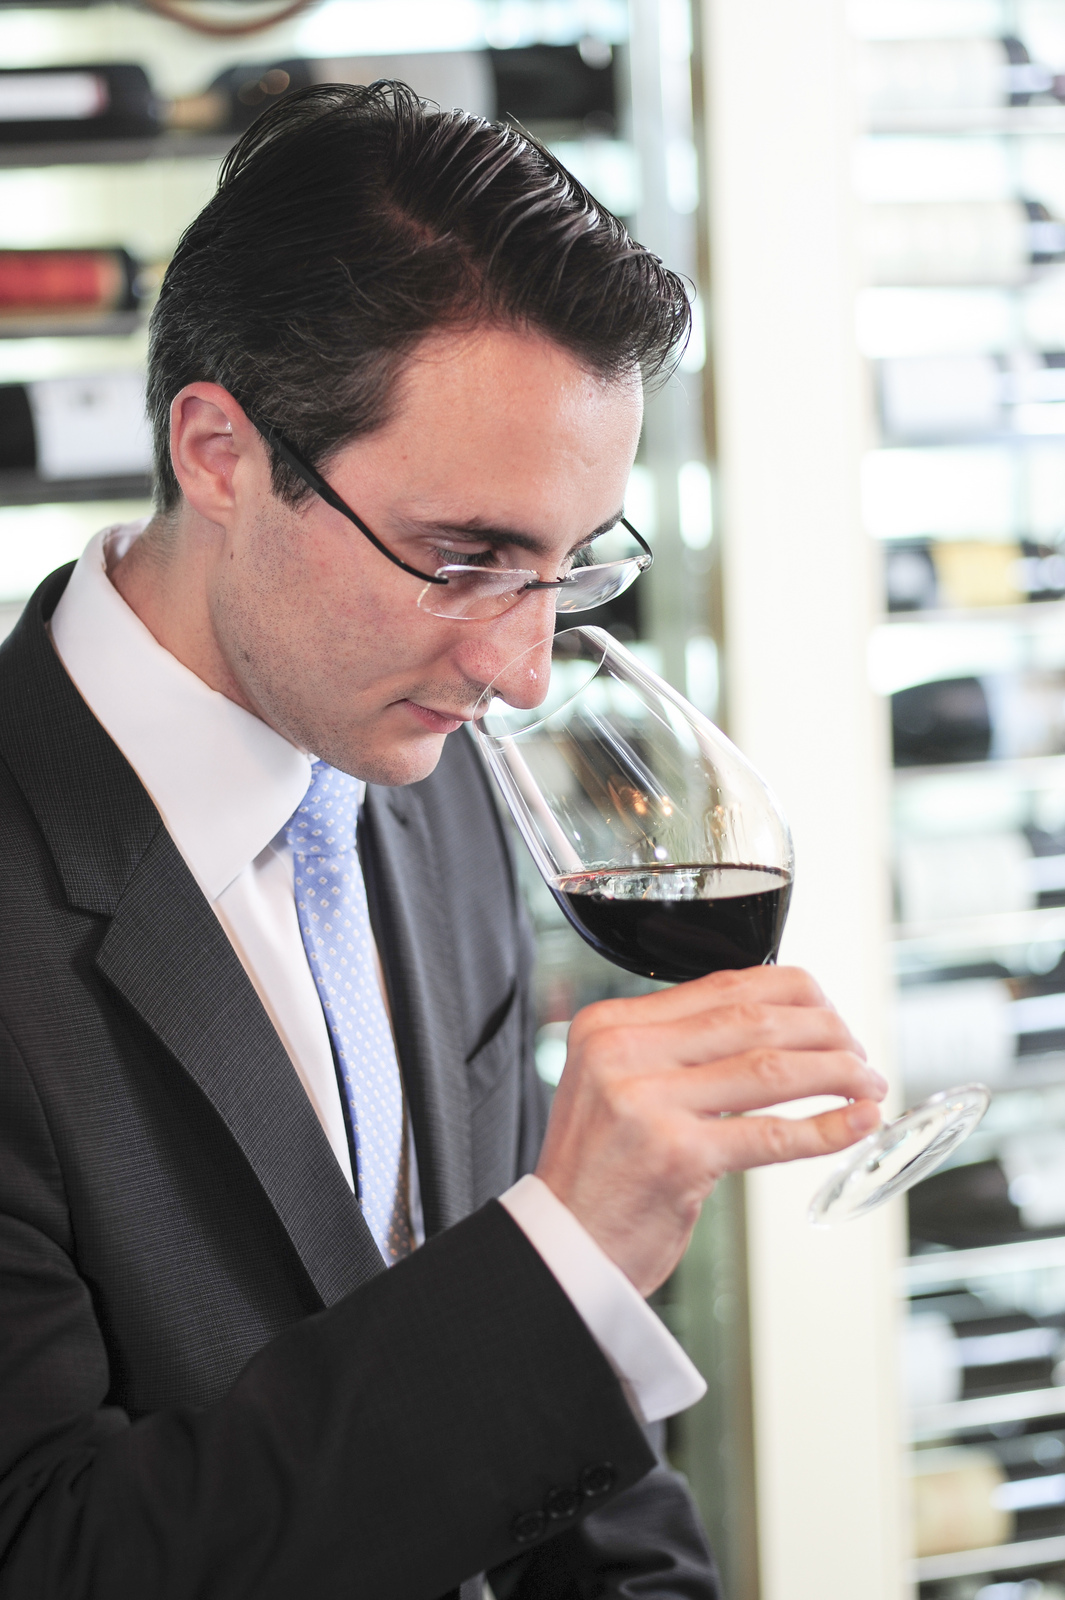 People who work in the business, like sommeliers, usually taste wines (sometimes, expensive ones) on a daily basis, for their job.